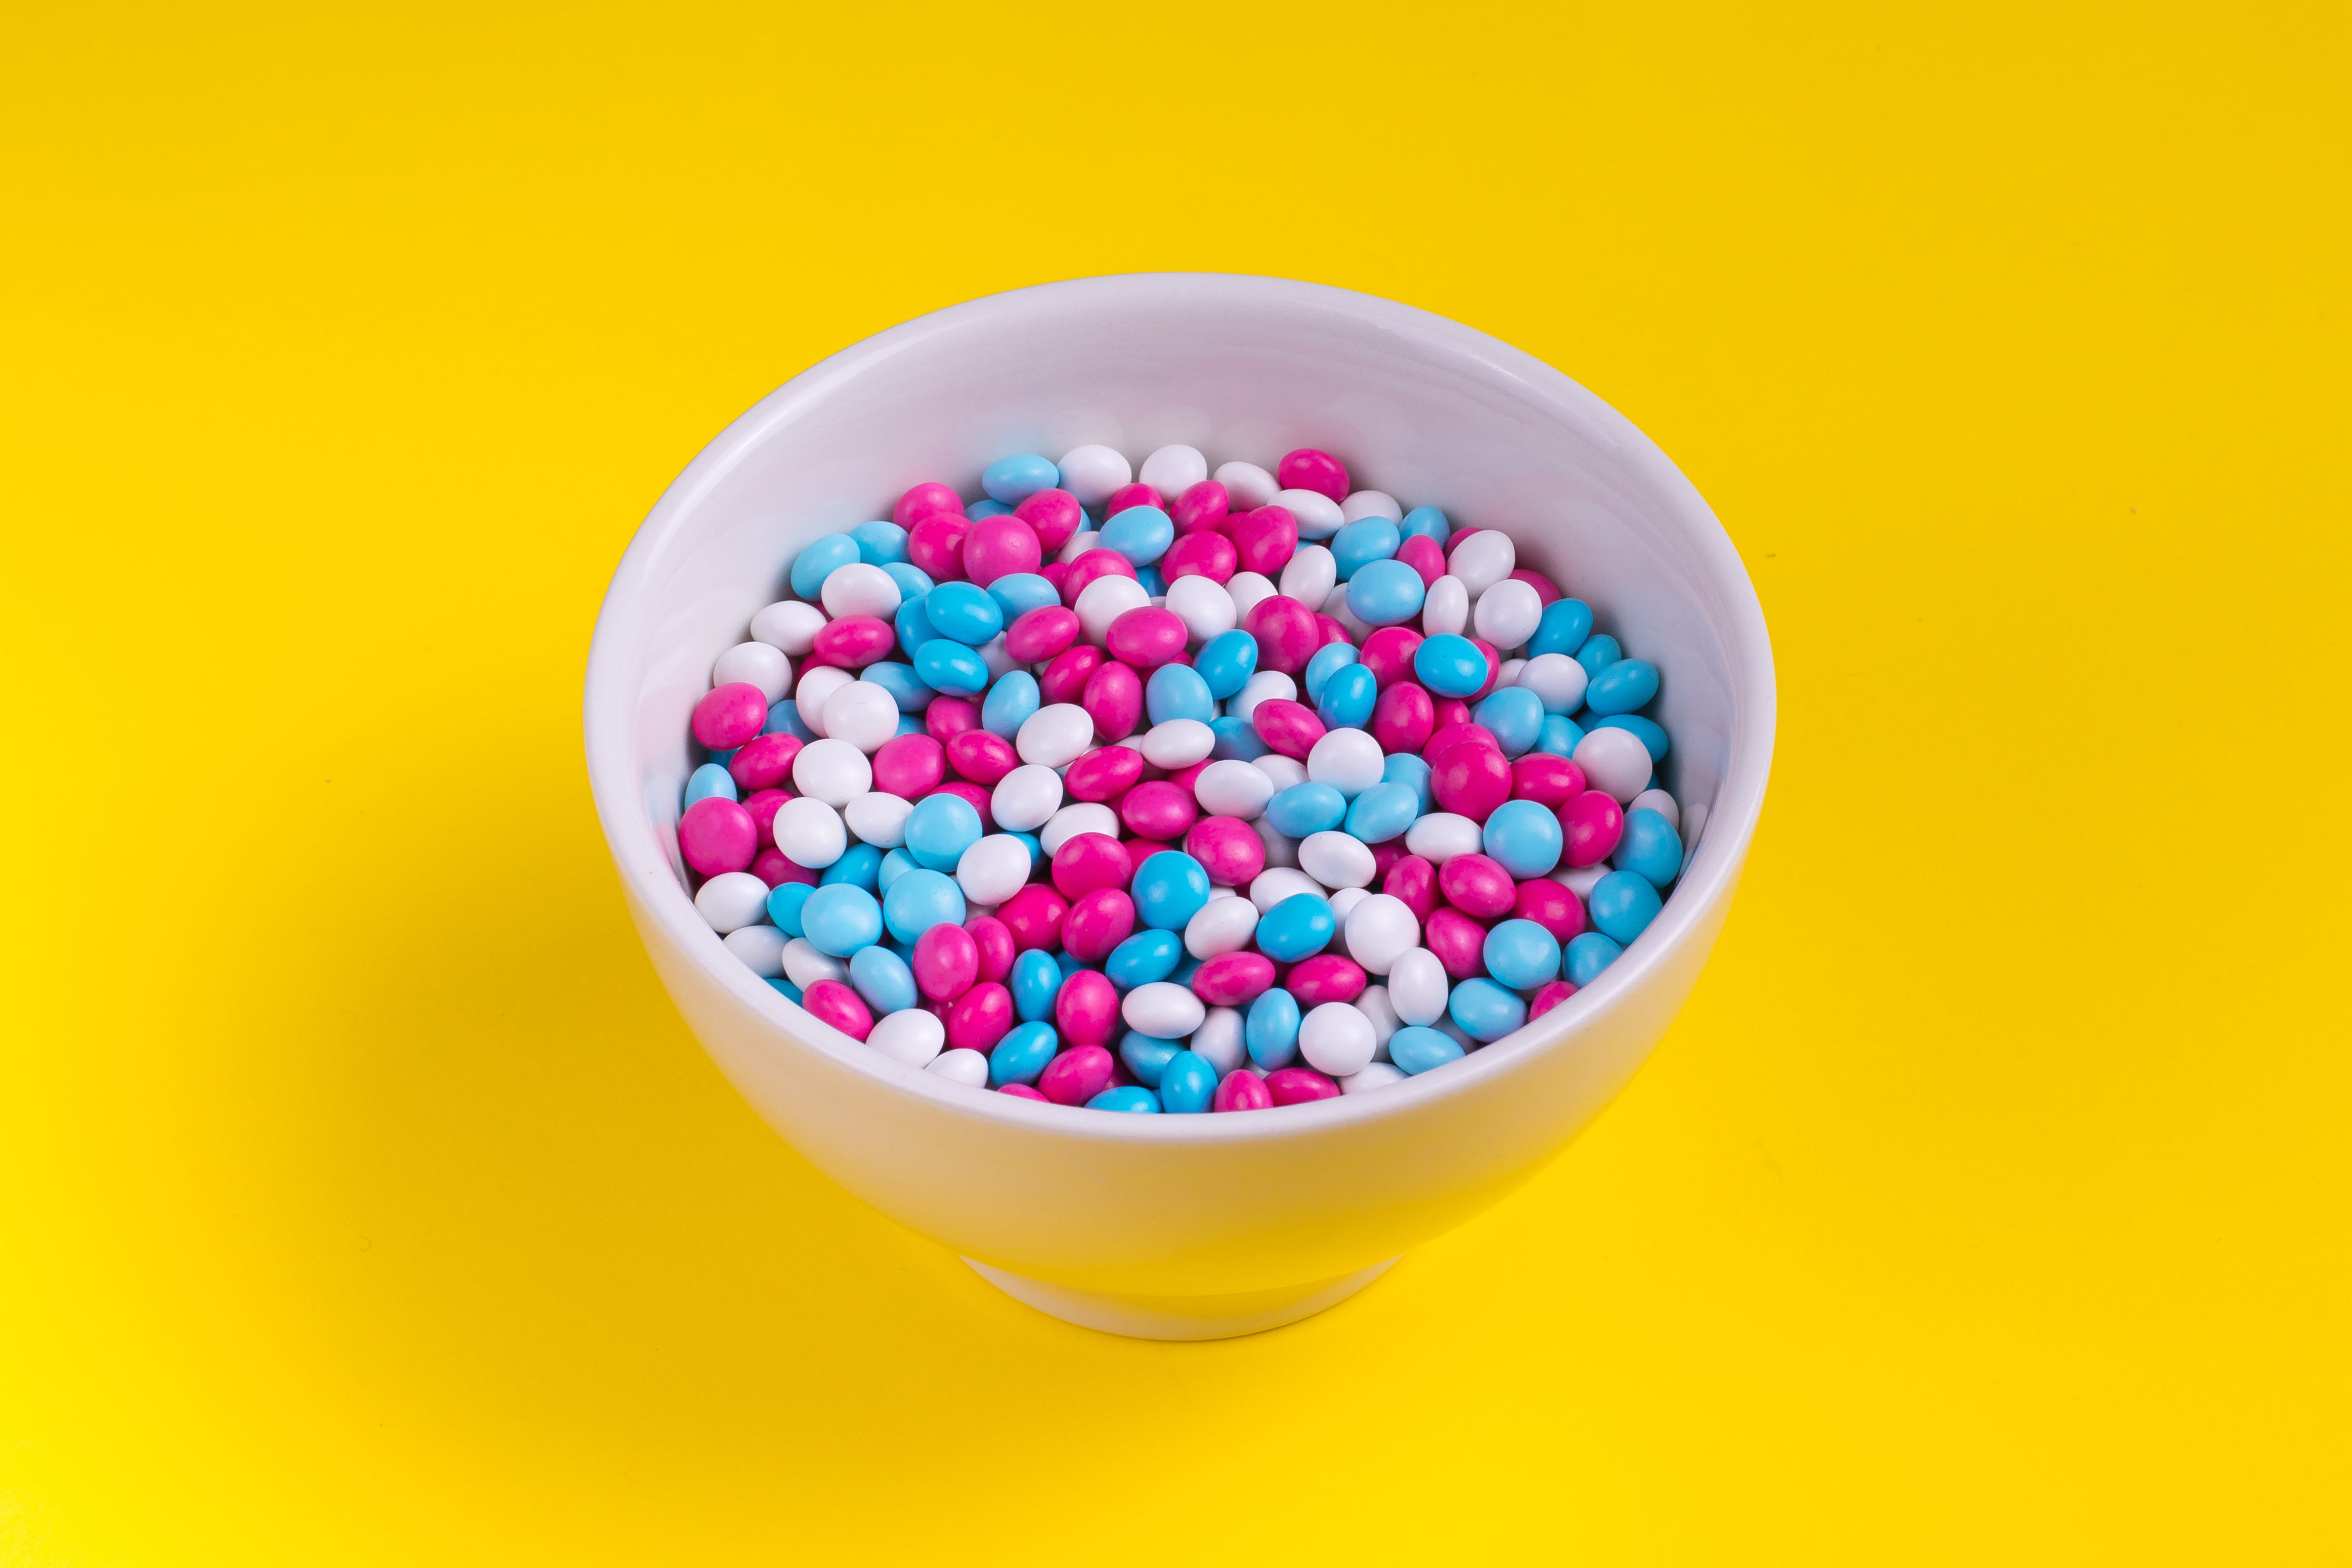 White, Pink, and Blue Candies in Bowl